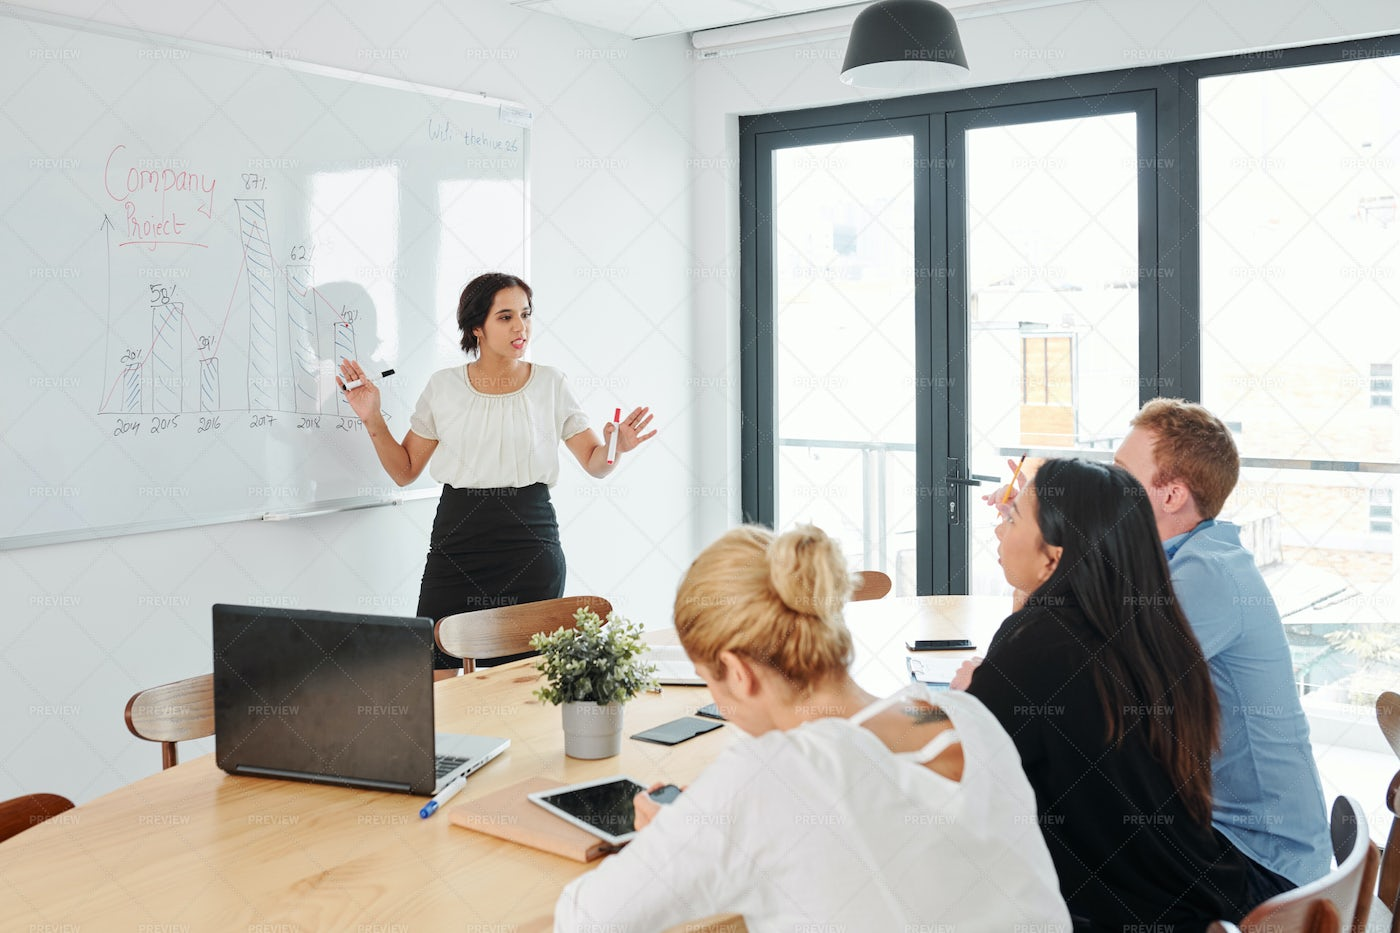 Business Presentation At Office: Stock Photos